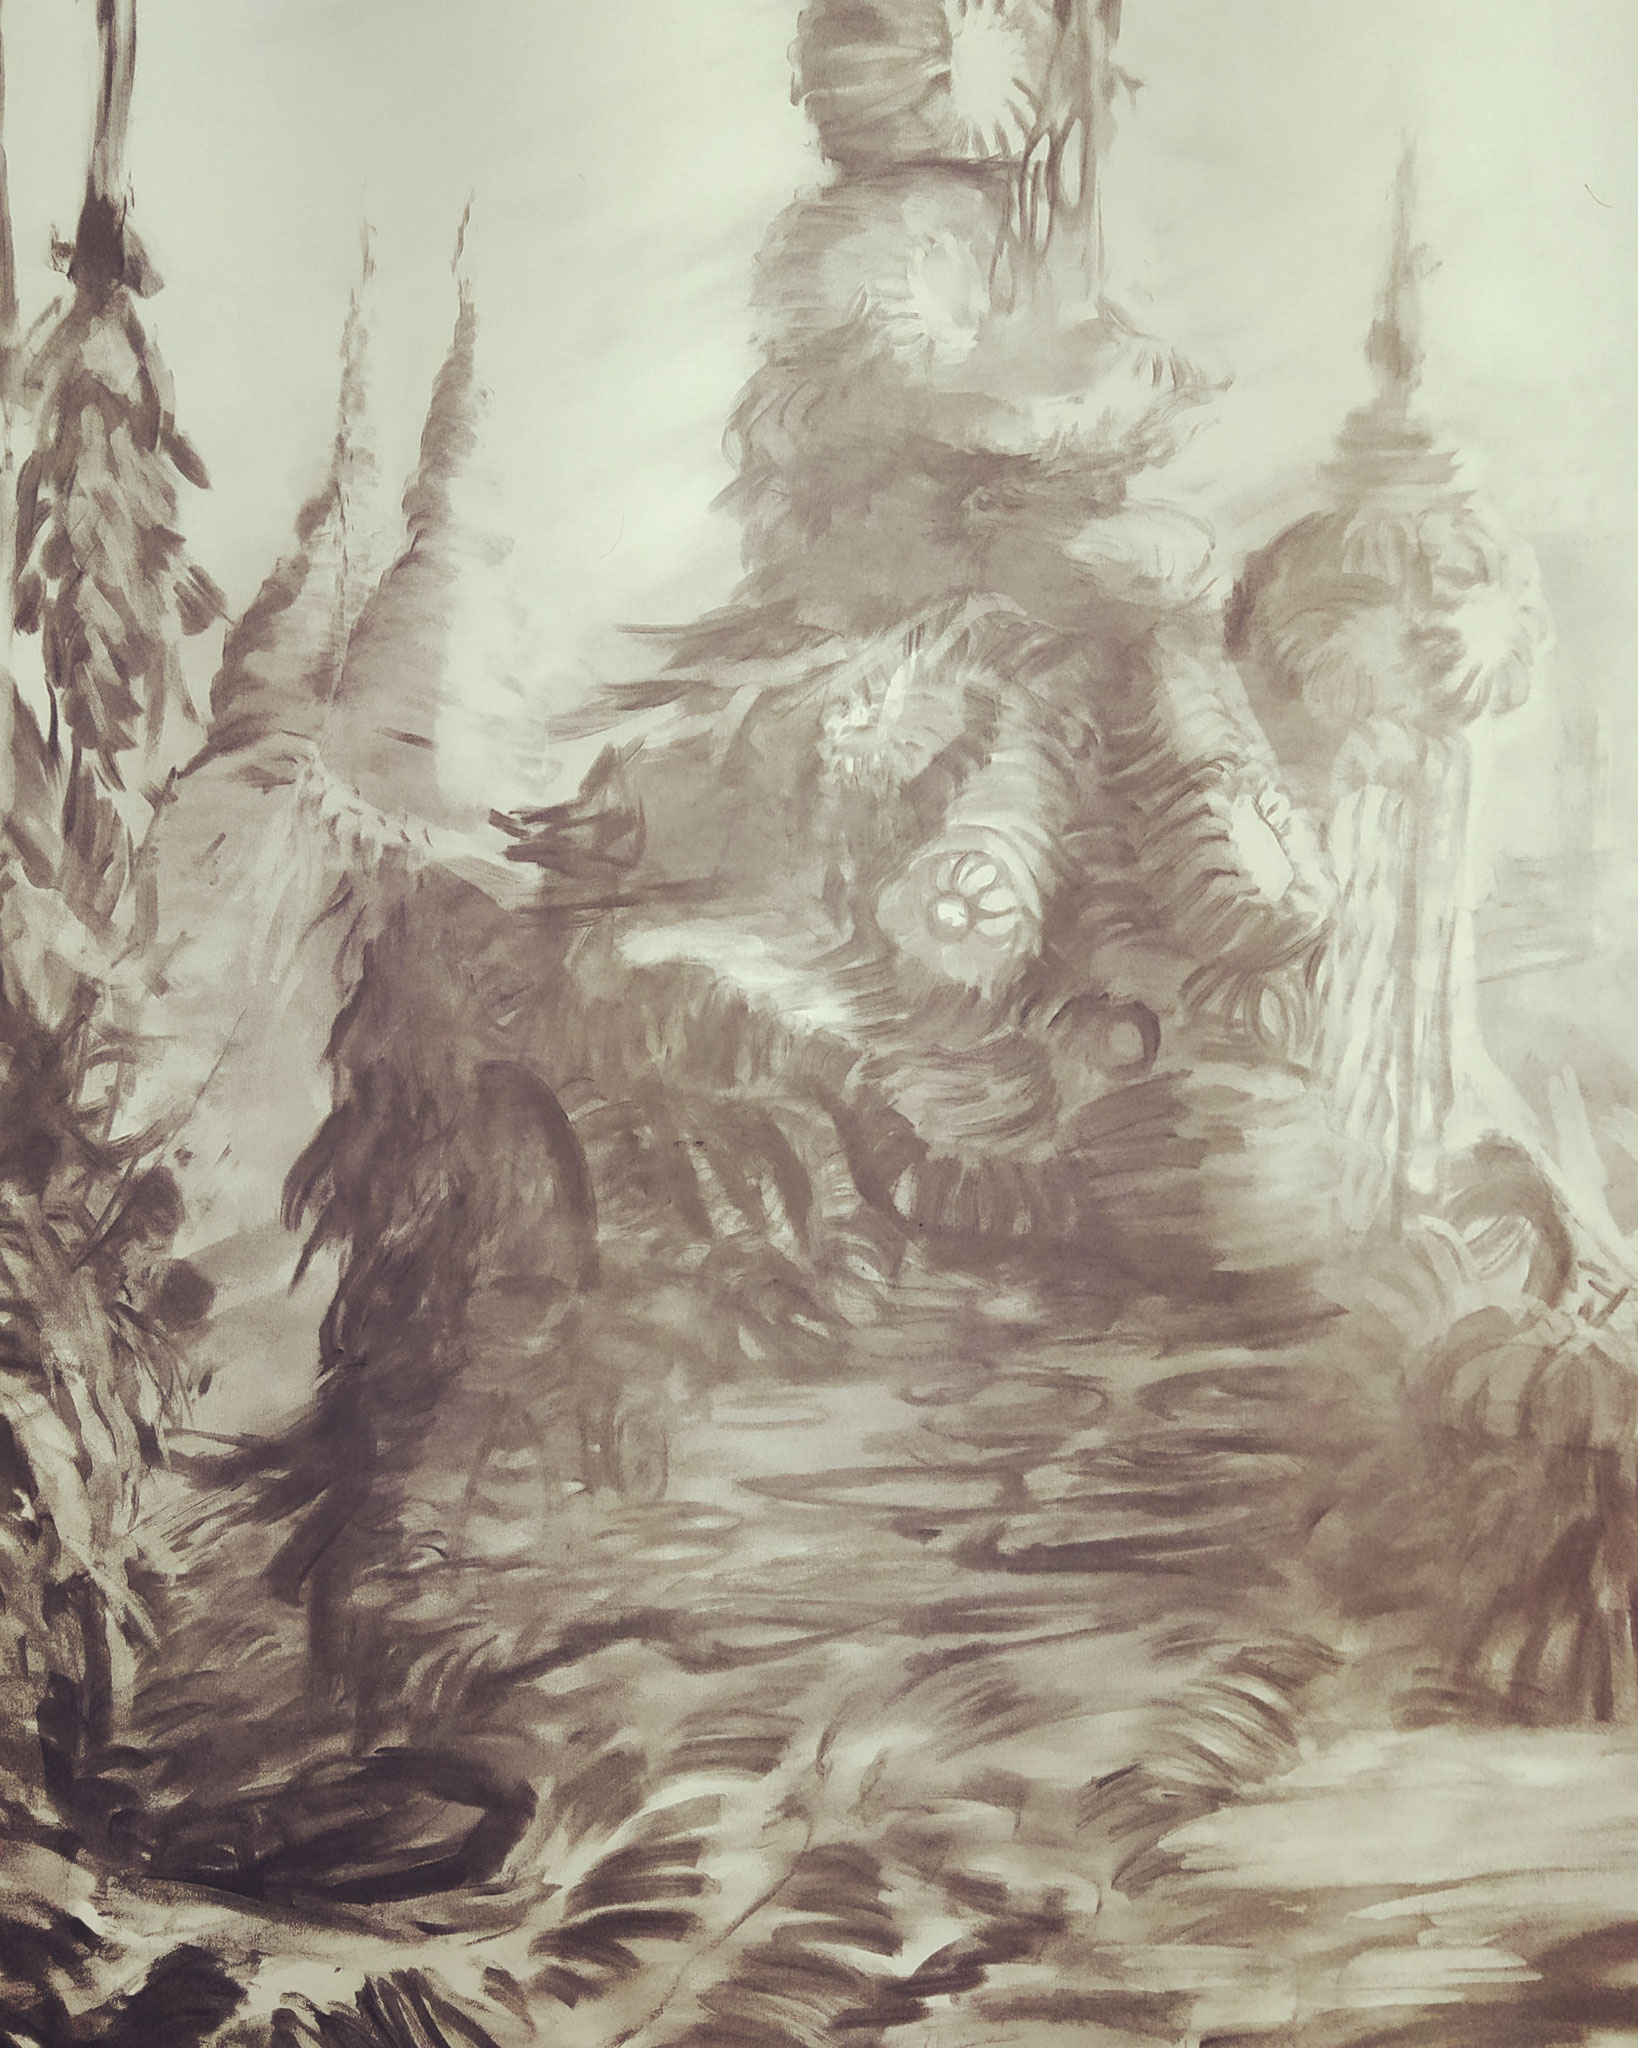 2020 - Wizzard's Tower - Charcoal on paper - AVAILABLE